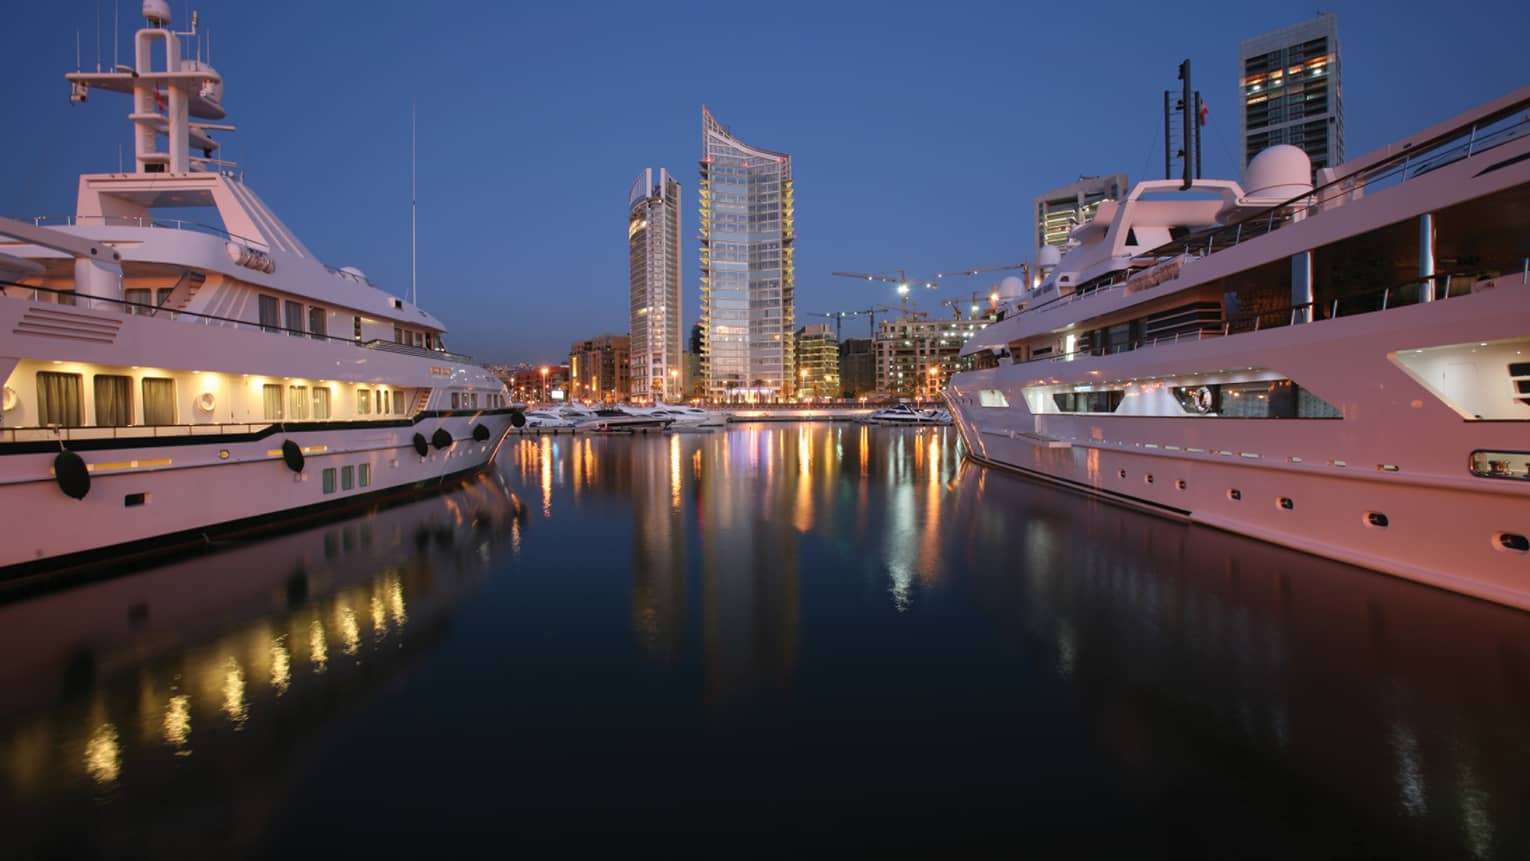 High rise buildings with lights at night reflected on water between two white yachts